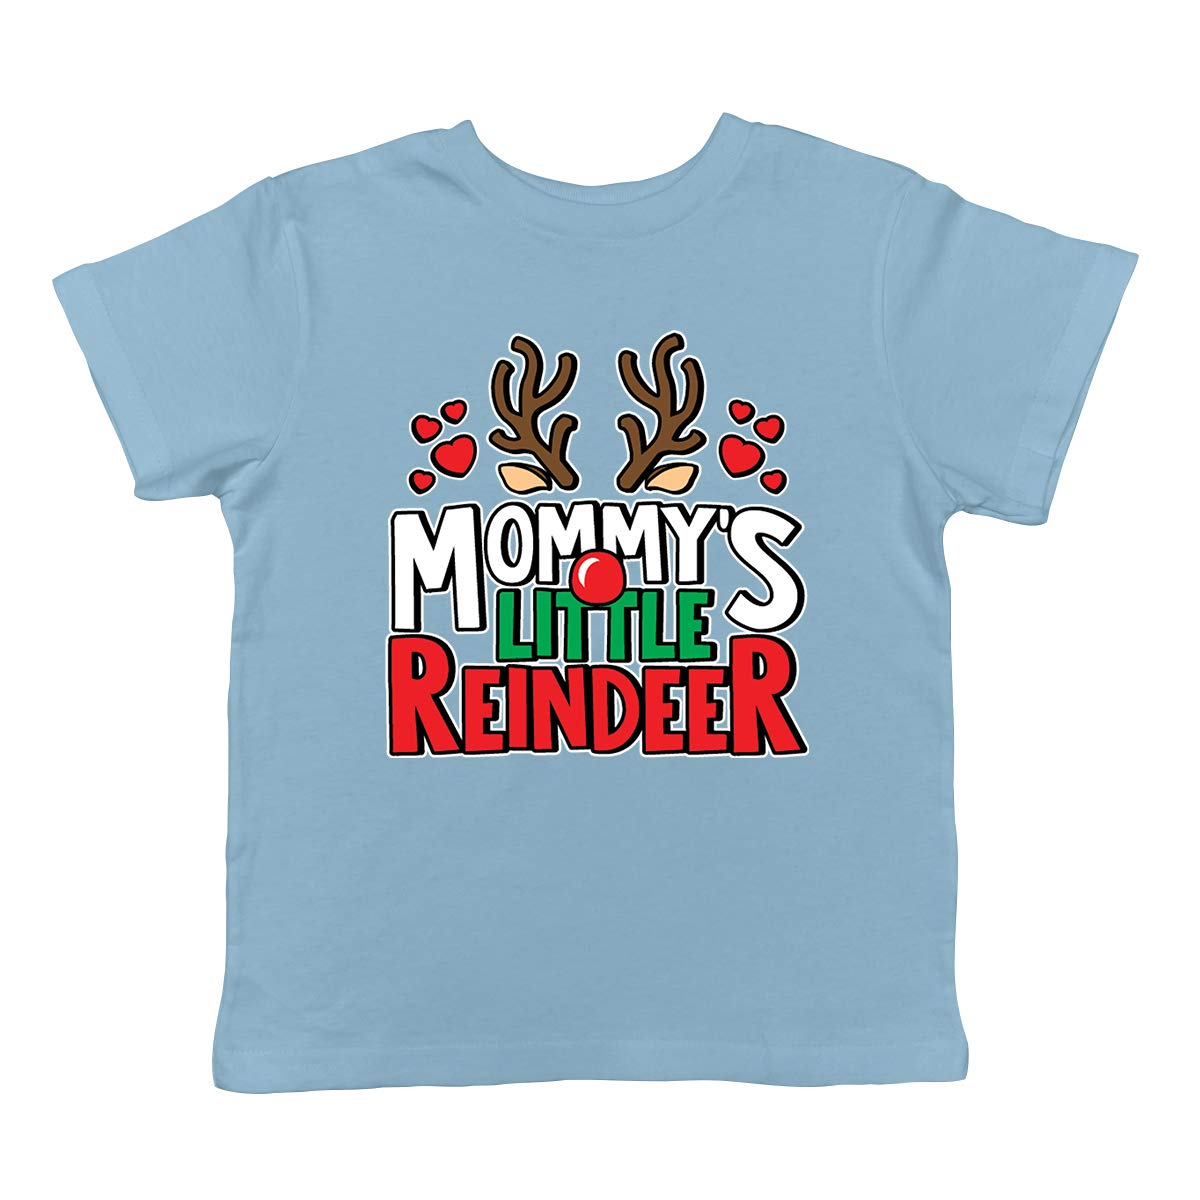 SpiritForged Apparel Mommys Little Reindeer Infant T-Shirt